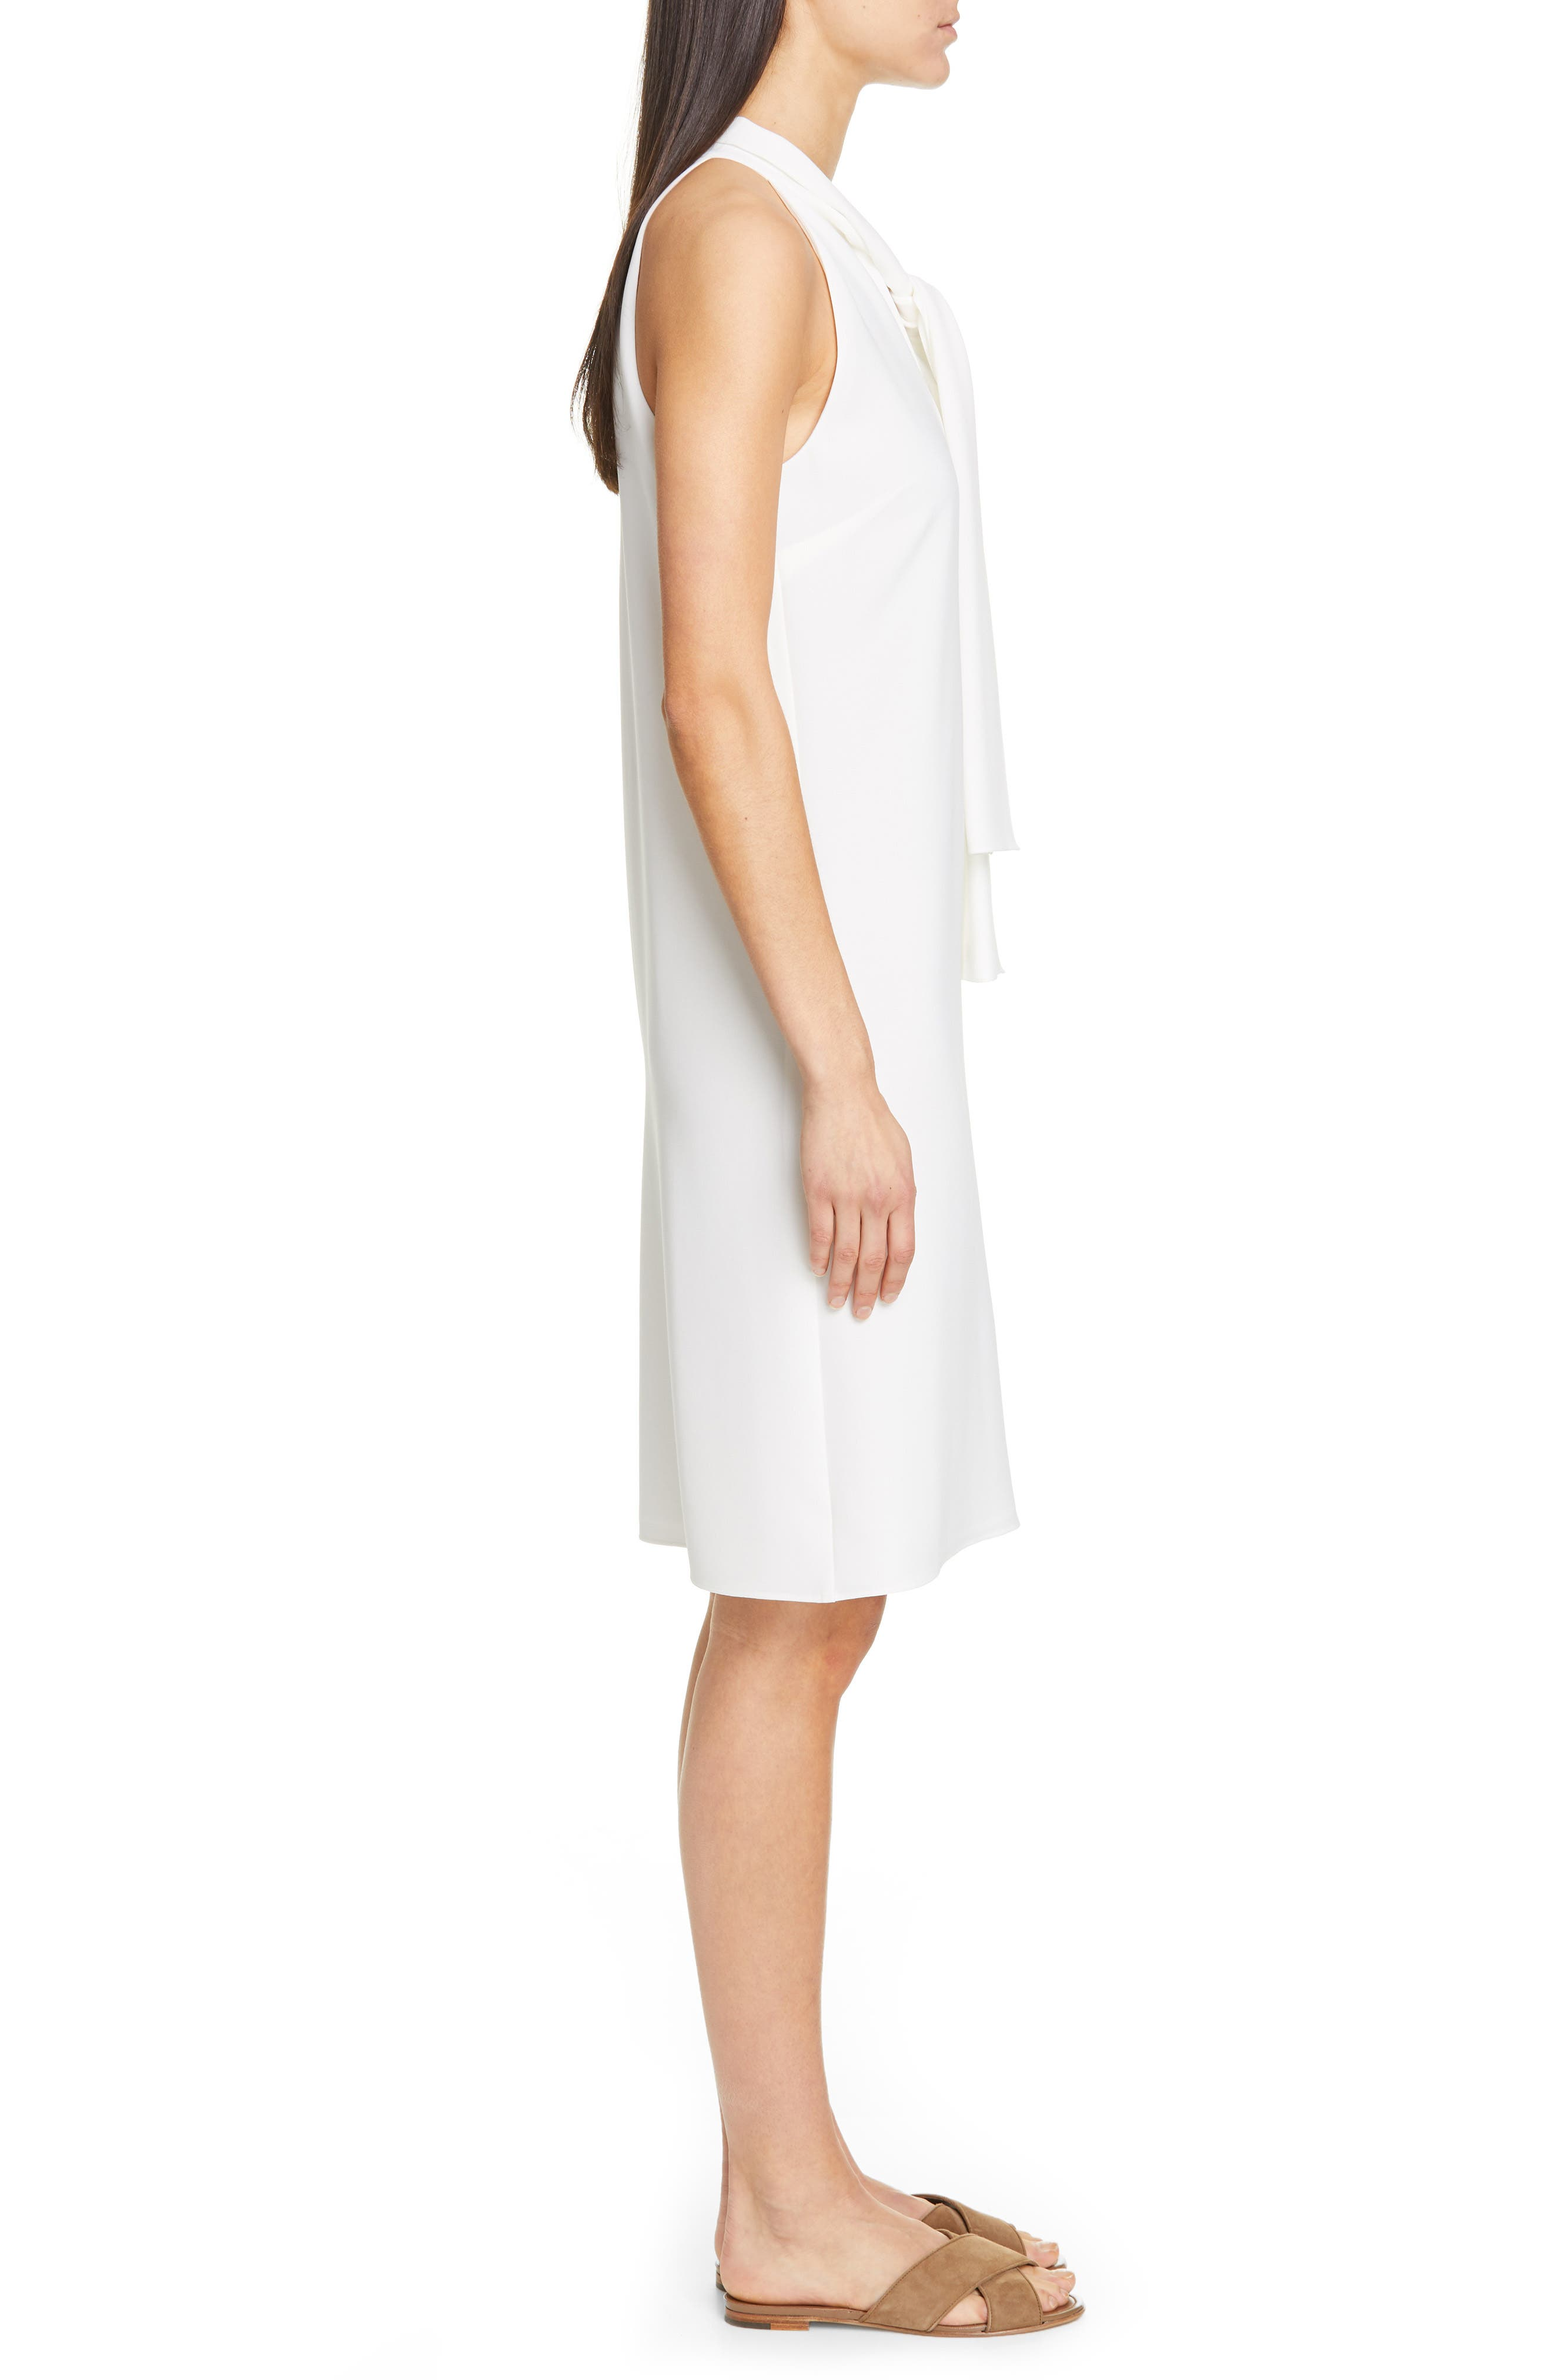 LAFAYETTE 148 NEW YORK, Amore Finesse Crepe Dress, Alternate thumbnail 4, color, CLOUD